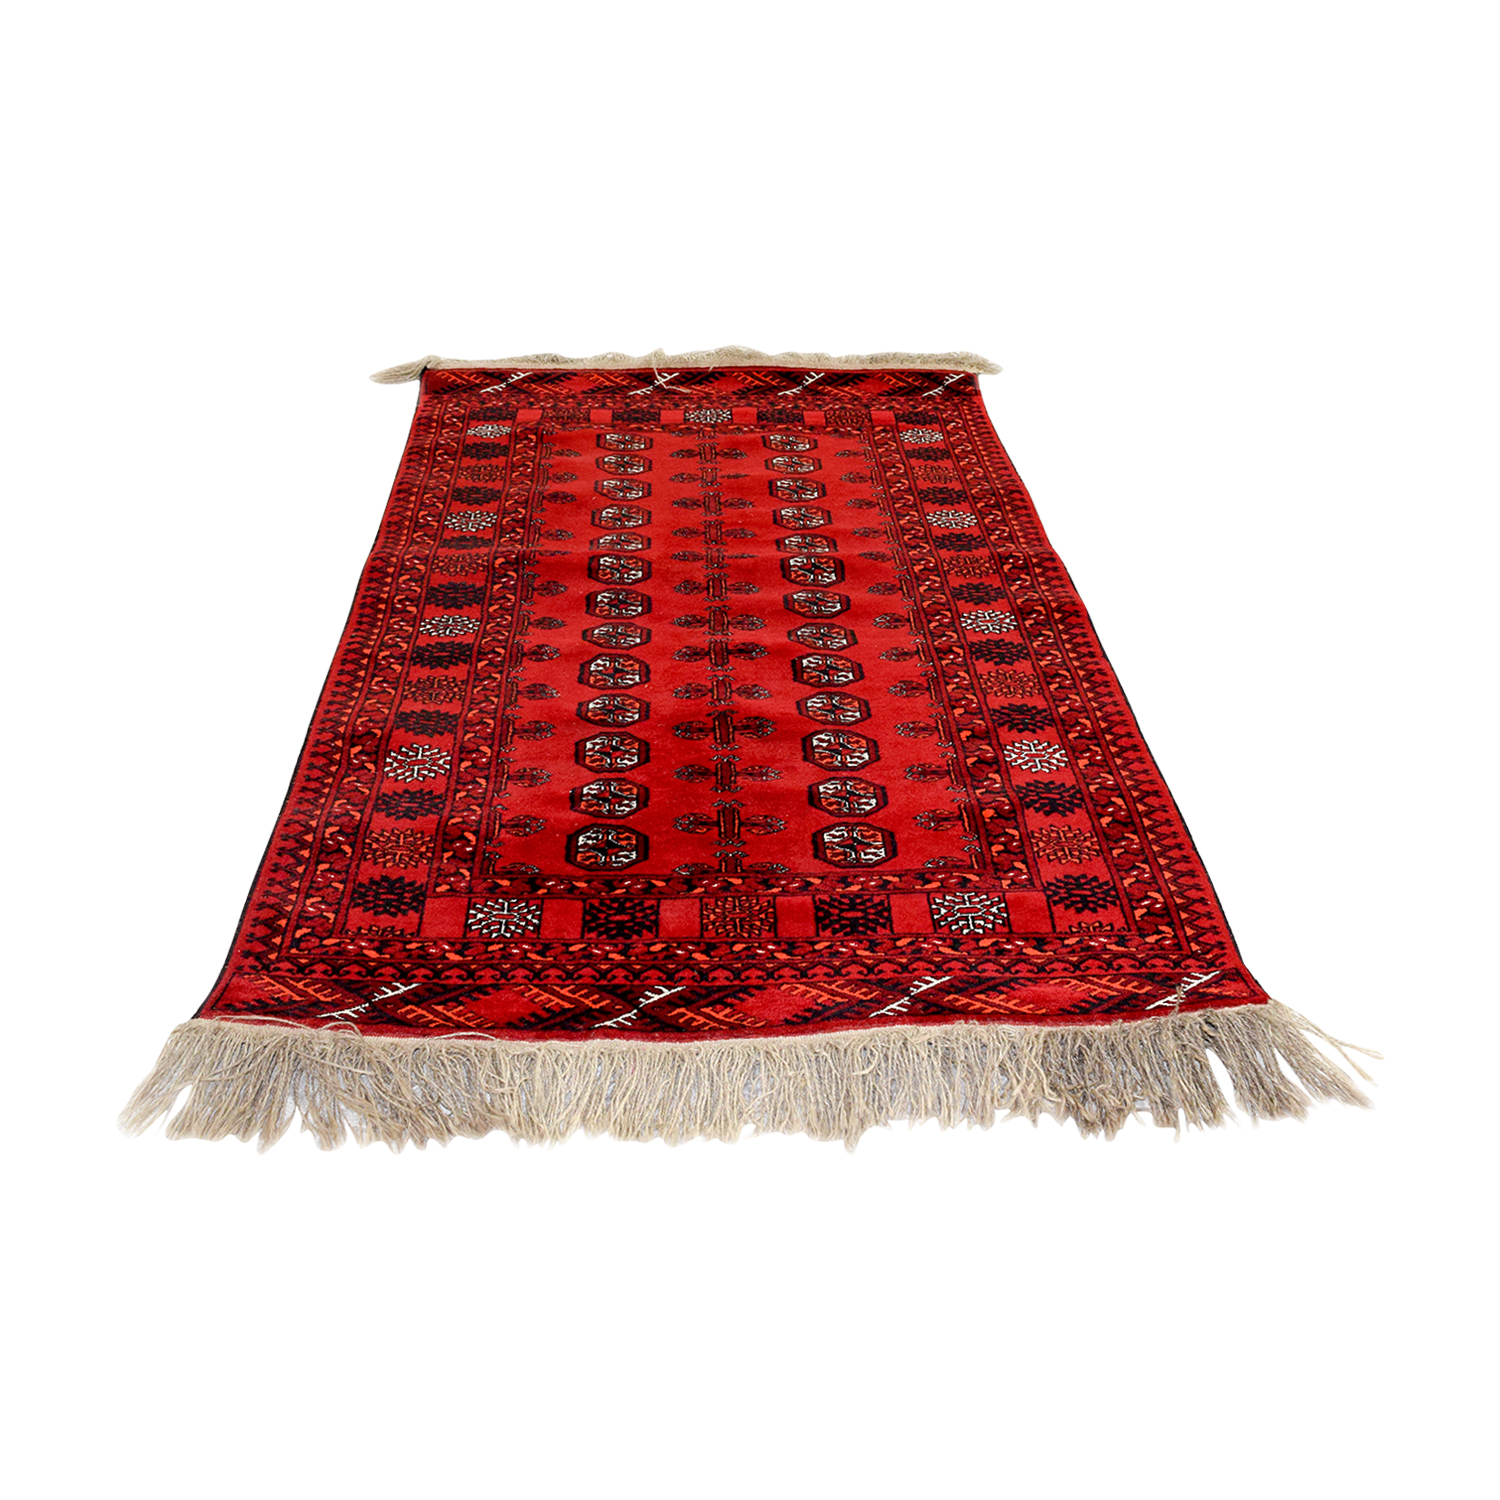 Red Black and White Runner Rug coupon